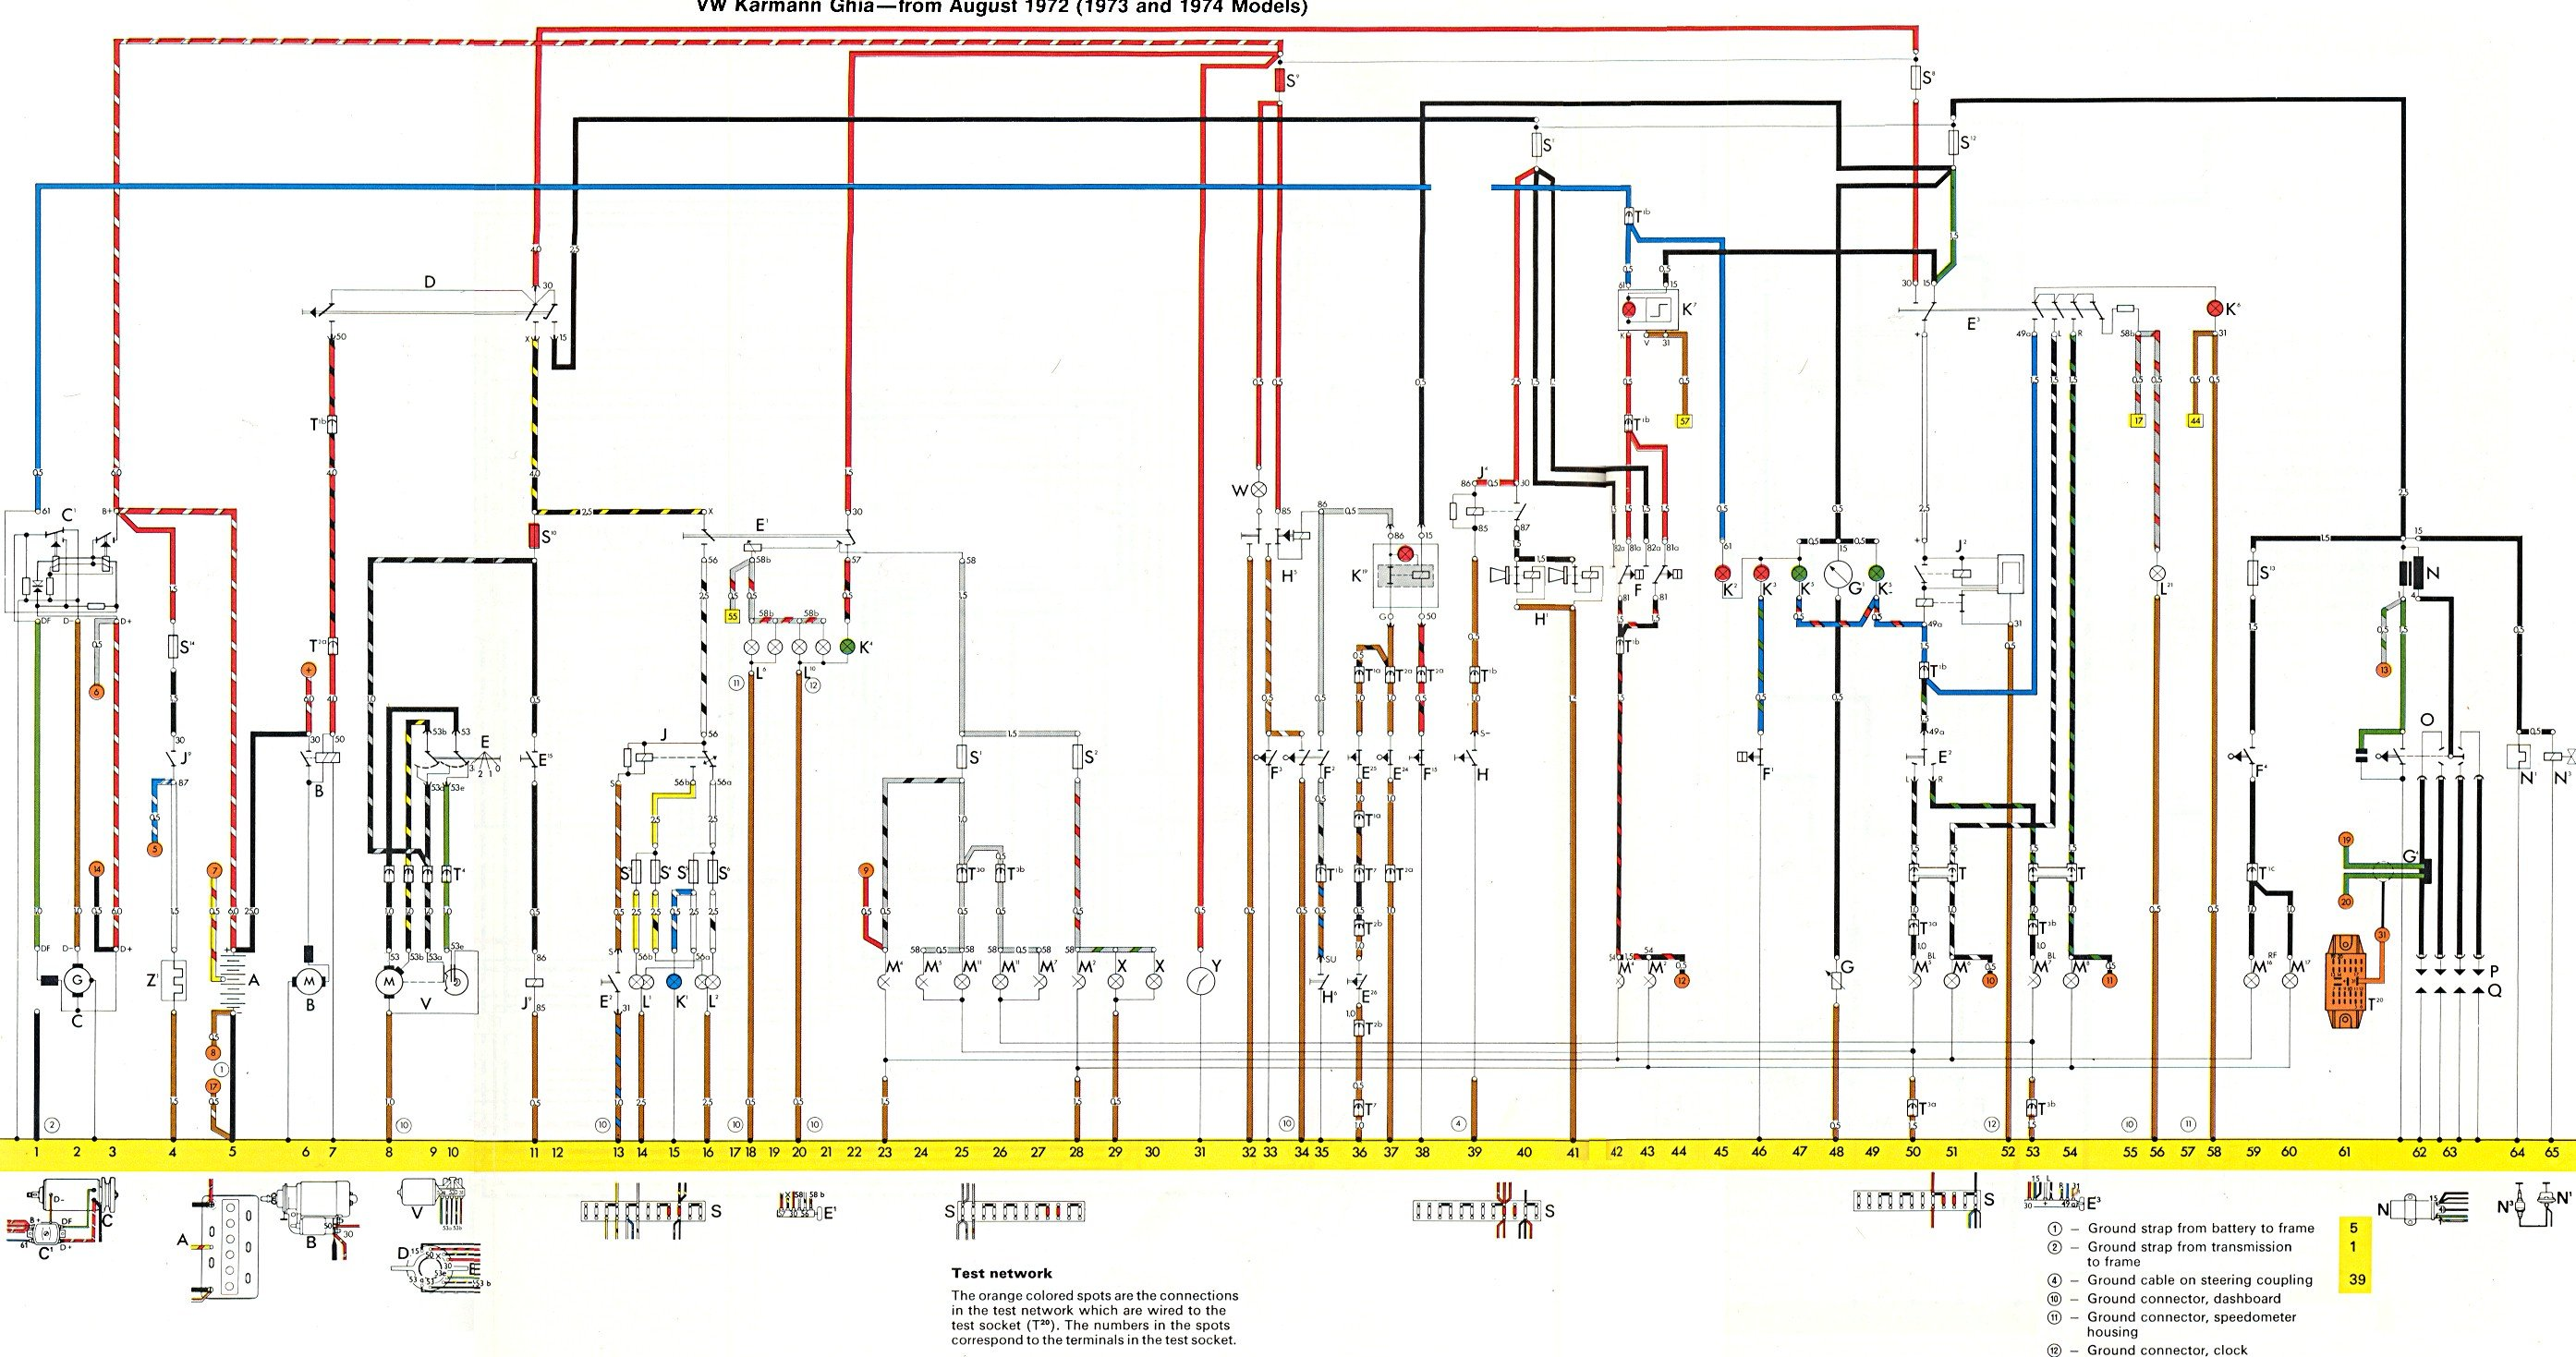 73 74ghia thesamba com karmann ghia wiring diagrams 1973 vw wiring diagram at pacquiaovsvargaslive.co